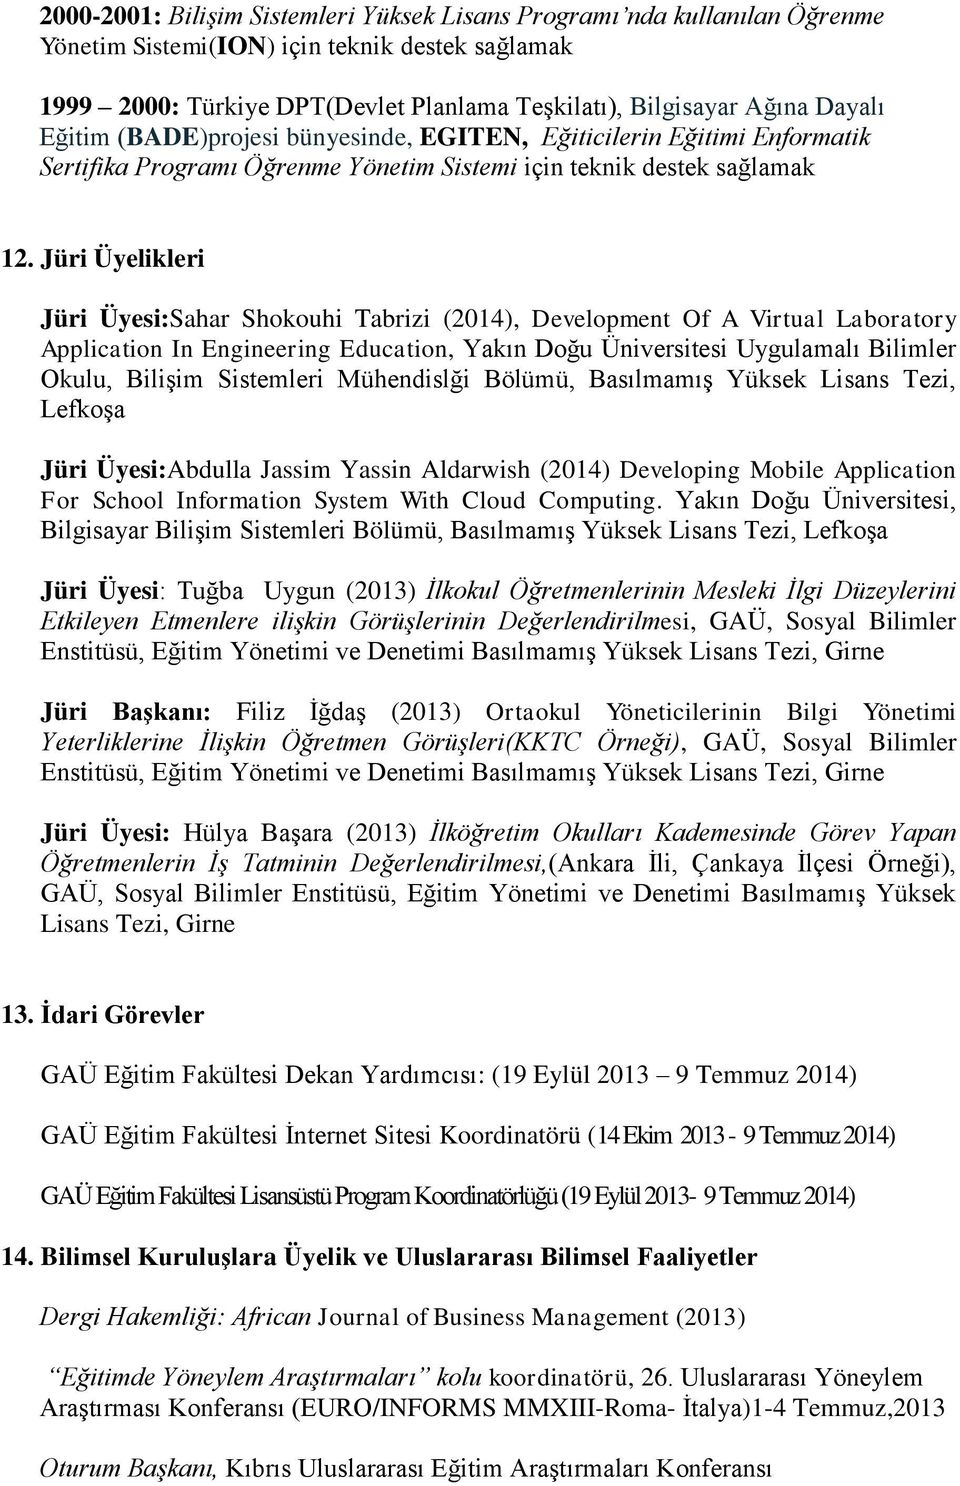 Jüri Üyelikleri Jüri Üyesi:Sahar Shokouhi Tabrizi (2014), Development Of A Virtual Laboratory Application In Engineering Education, Yakın Doğu Üniversitesi Uygulamalı Bilimler Okulu, Bilişim